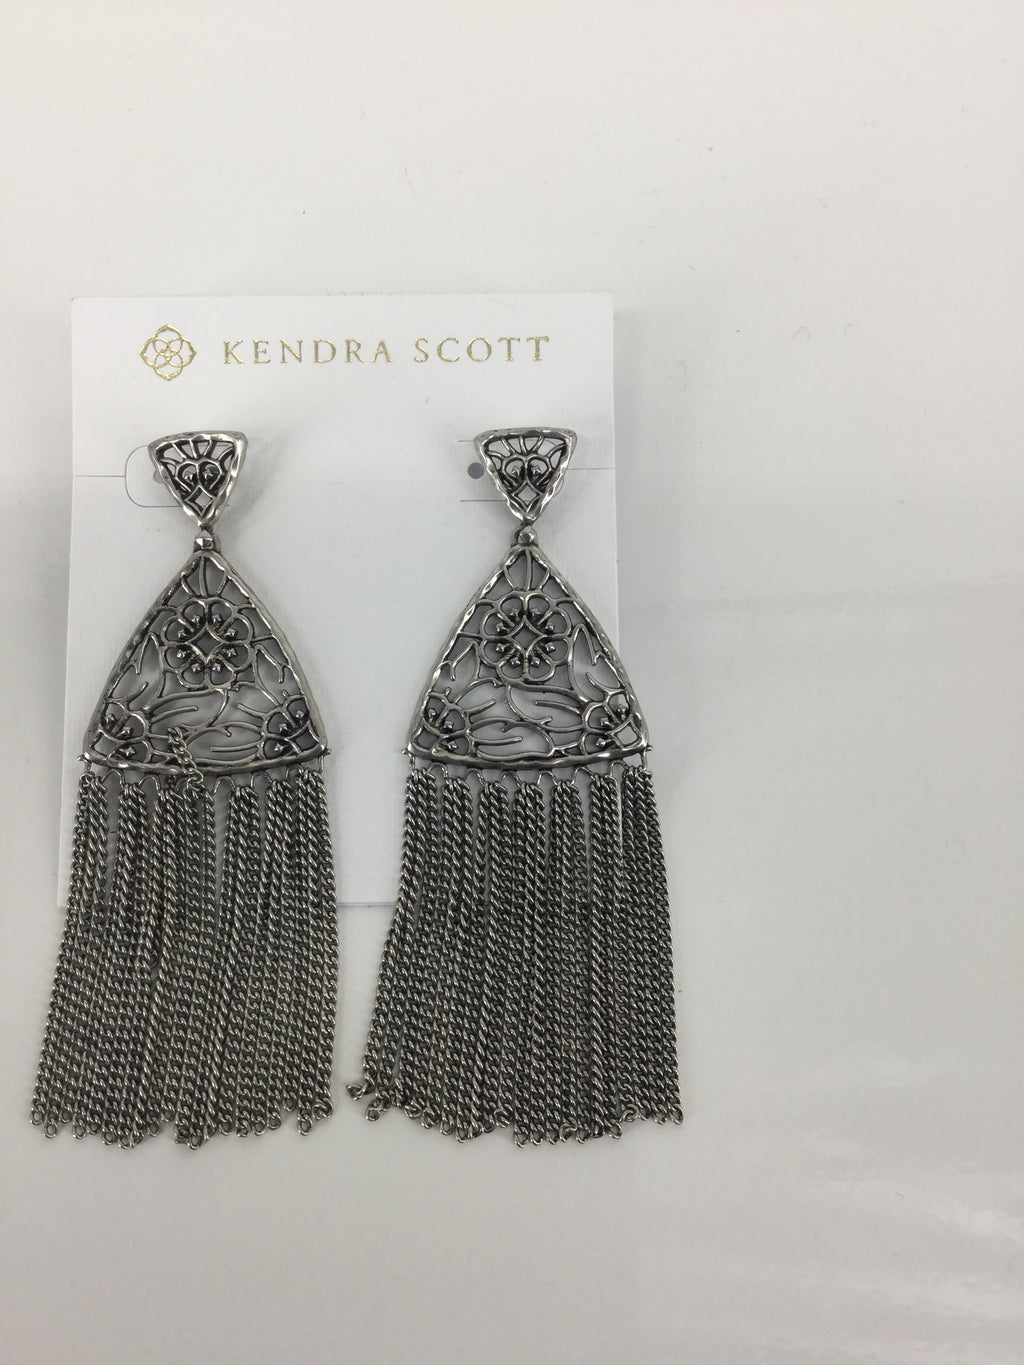 KENDRA SCOTT ANA EARRINGS